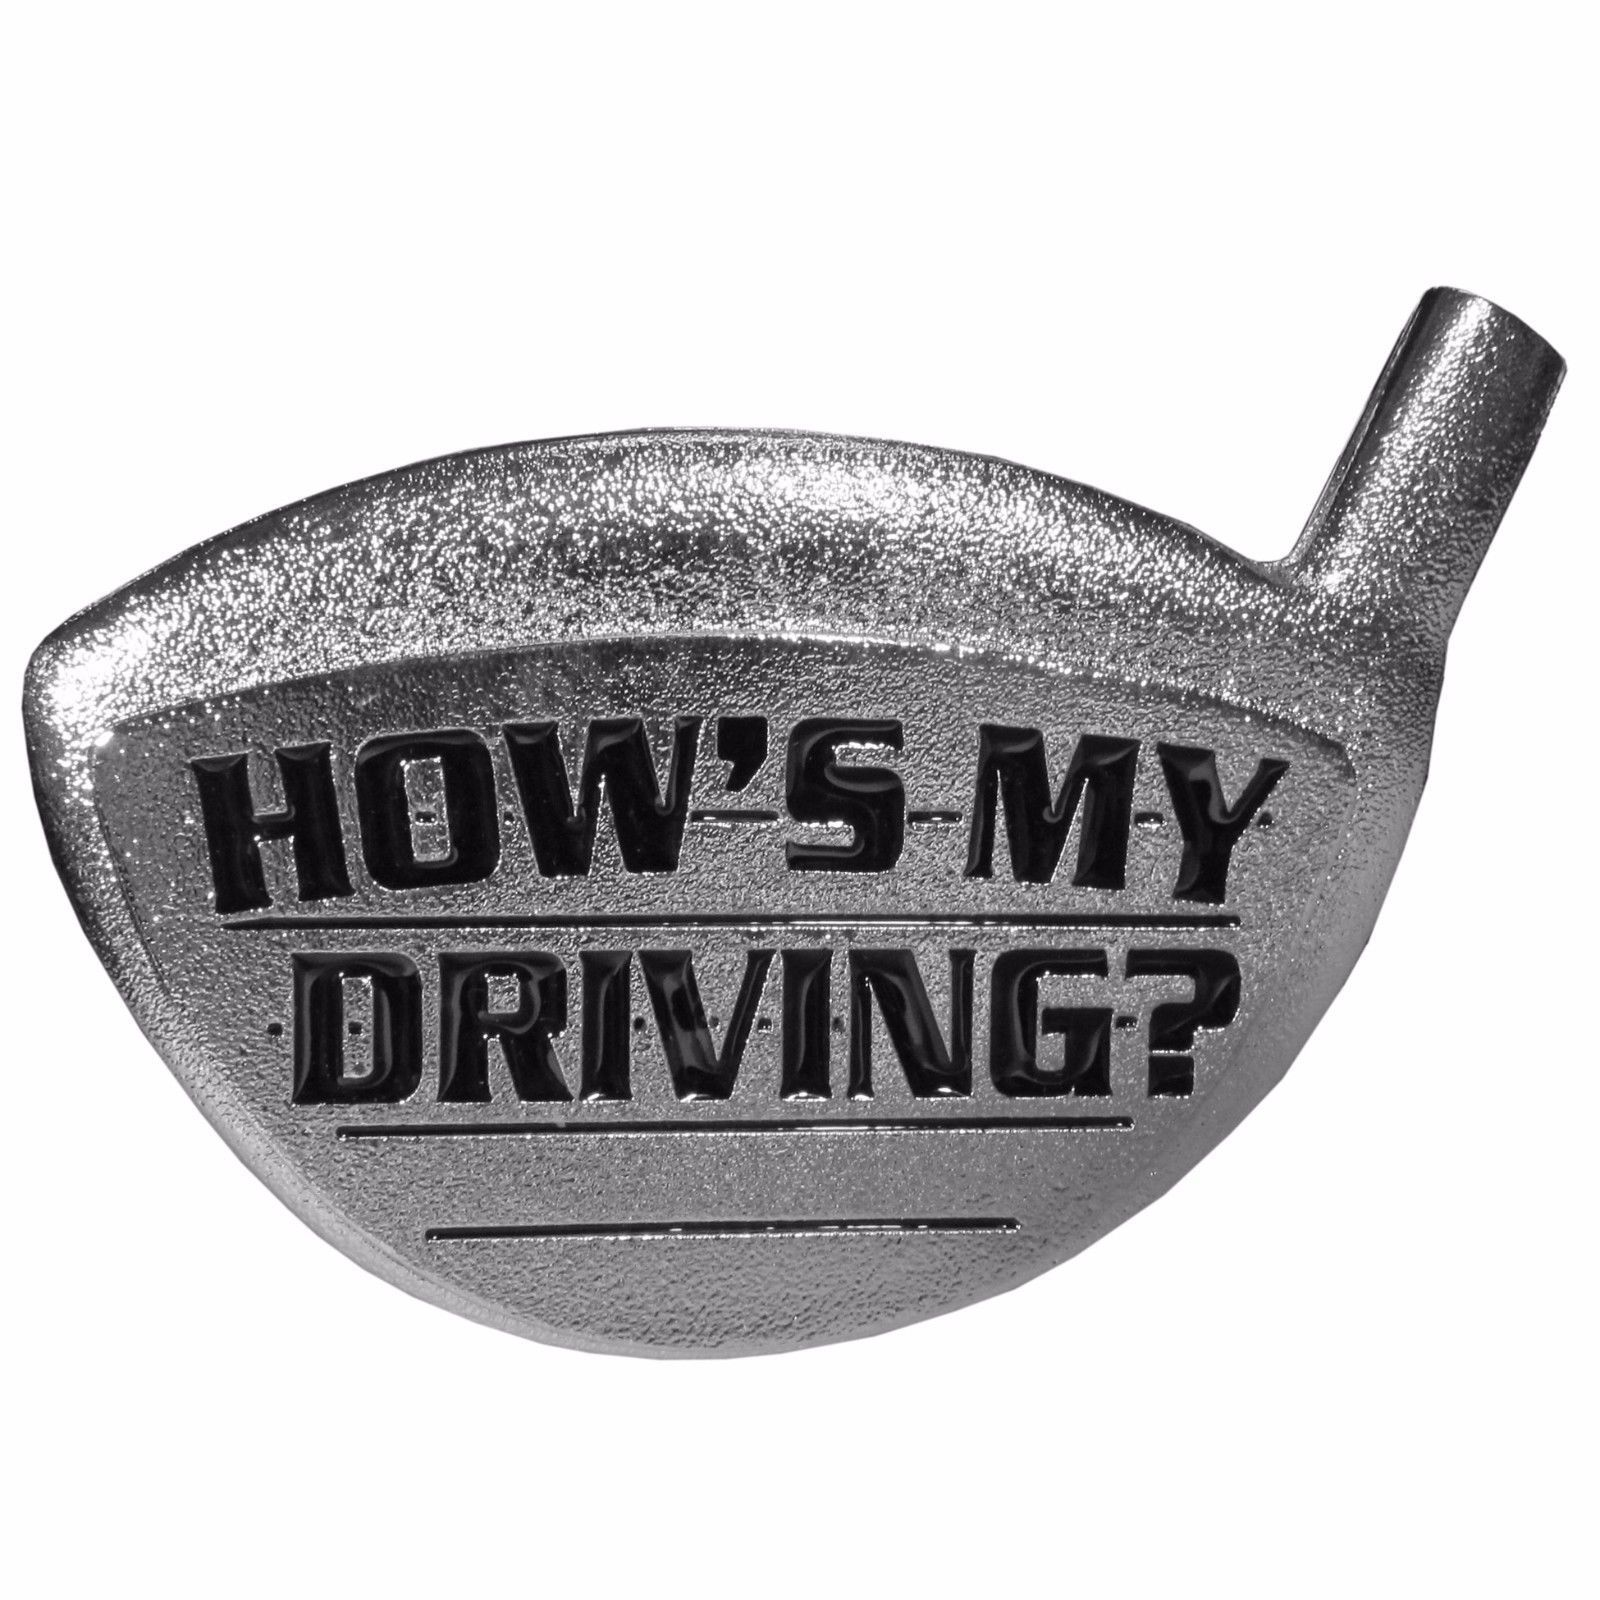 Primary image for golfing hitch hows my driving metal trailer hitch cover